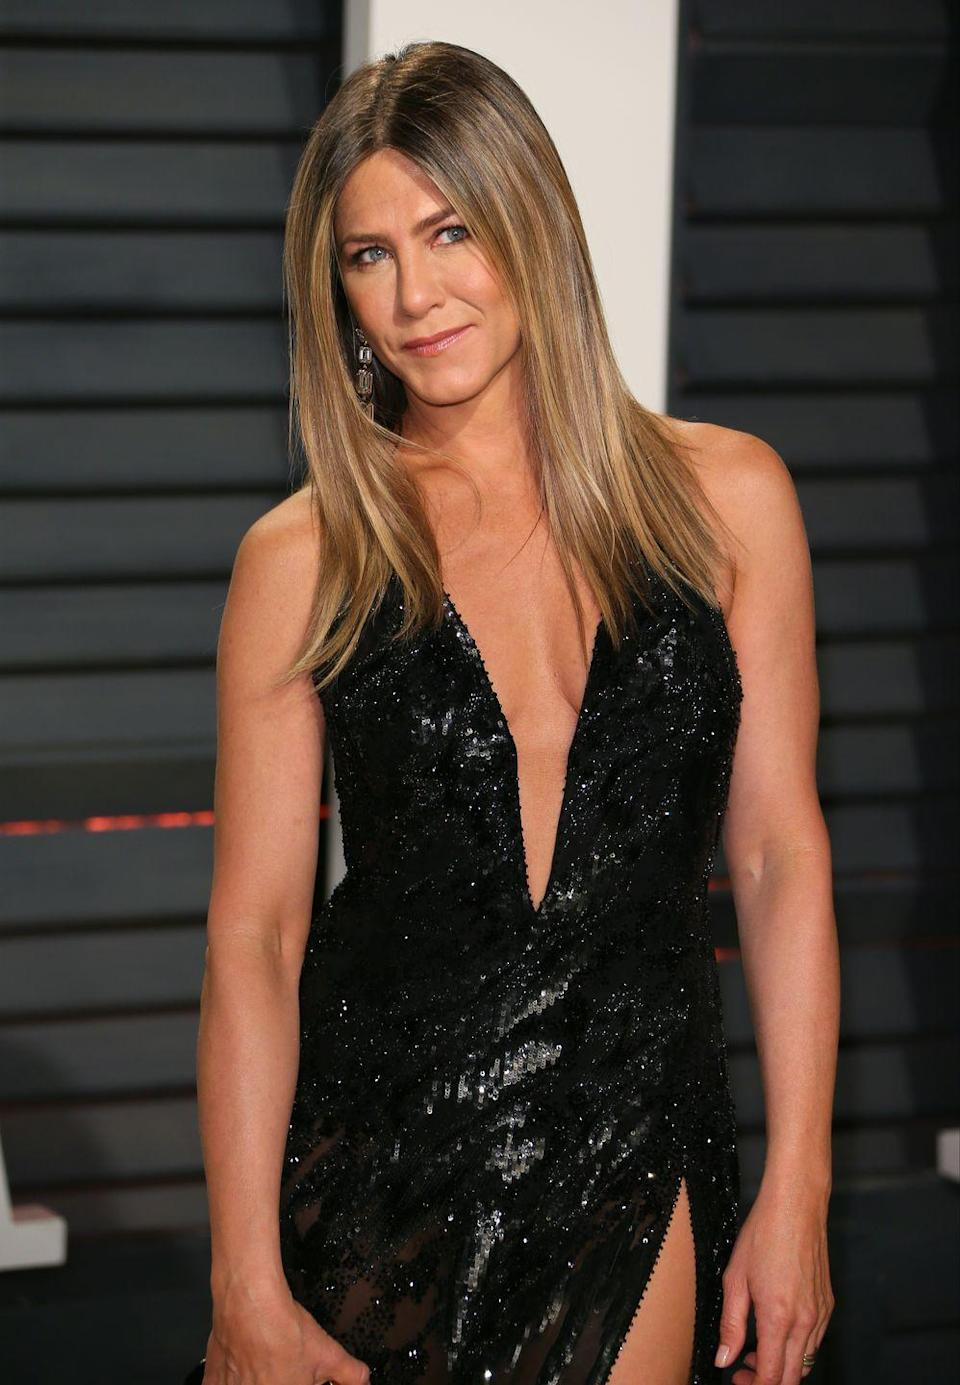 """<p>Aniston told <a href=""""https://people.com/food/how-to-get-jennifer-anistons-amazingly-toned-arms/"""" rel=""""nofollow noopener"""" target=""""_blank"""" data-ylk=""""slk:People"""" class=""""link rapid-noclick-resp"""">People</a> that she's big on using her own body weight for workouts. Or, if she's at the gym, she'll add a little weight. """"Grab little five-pound weights if you have nothing else, and just move them around,"""" she said.</p>"""